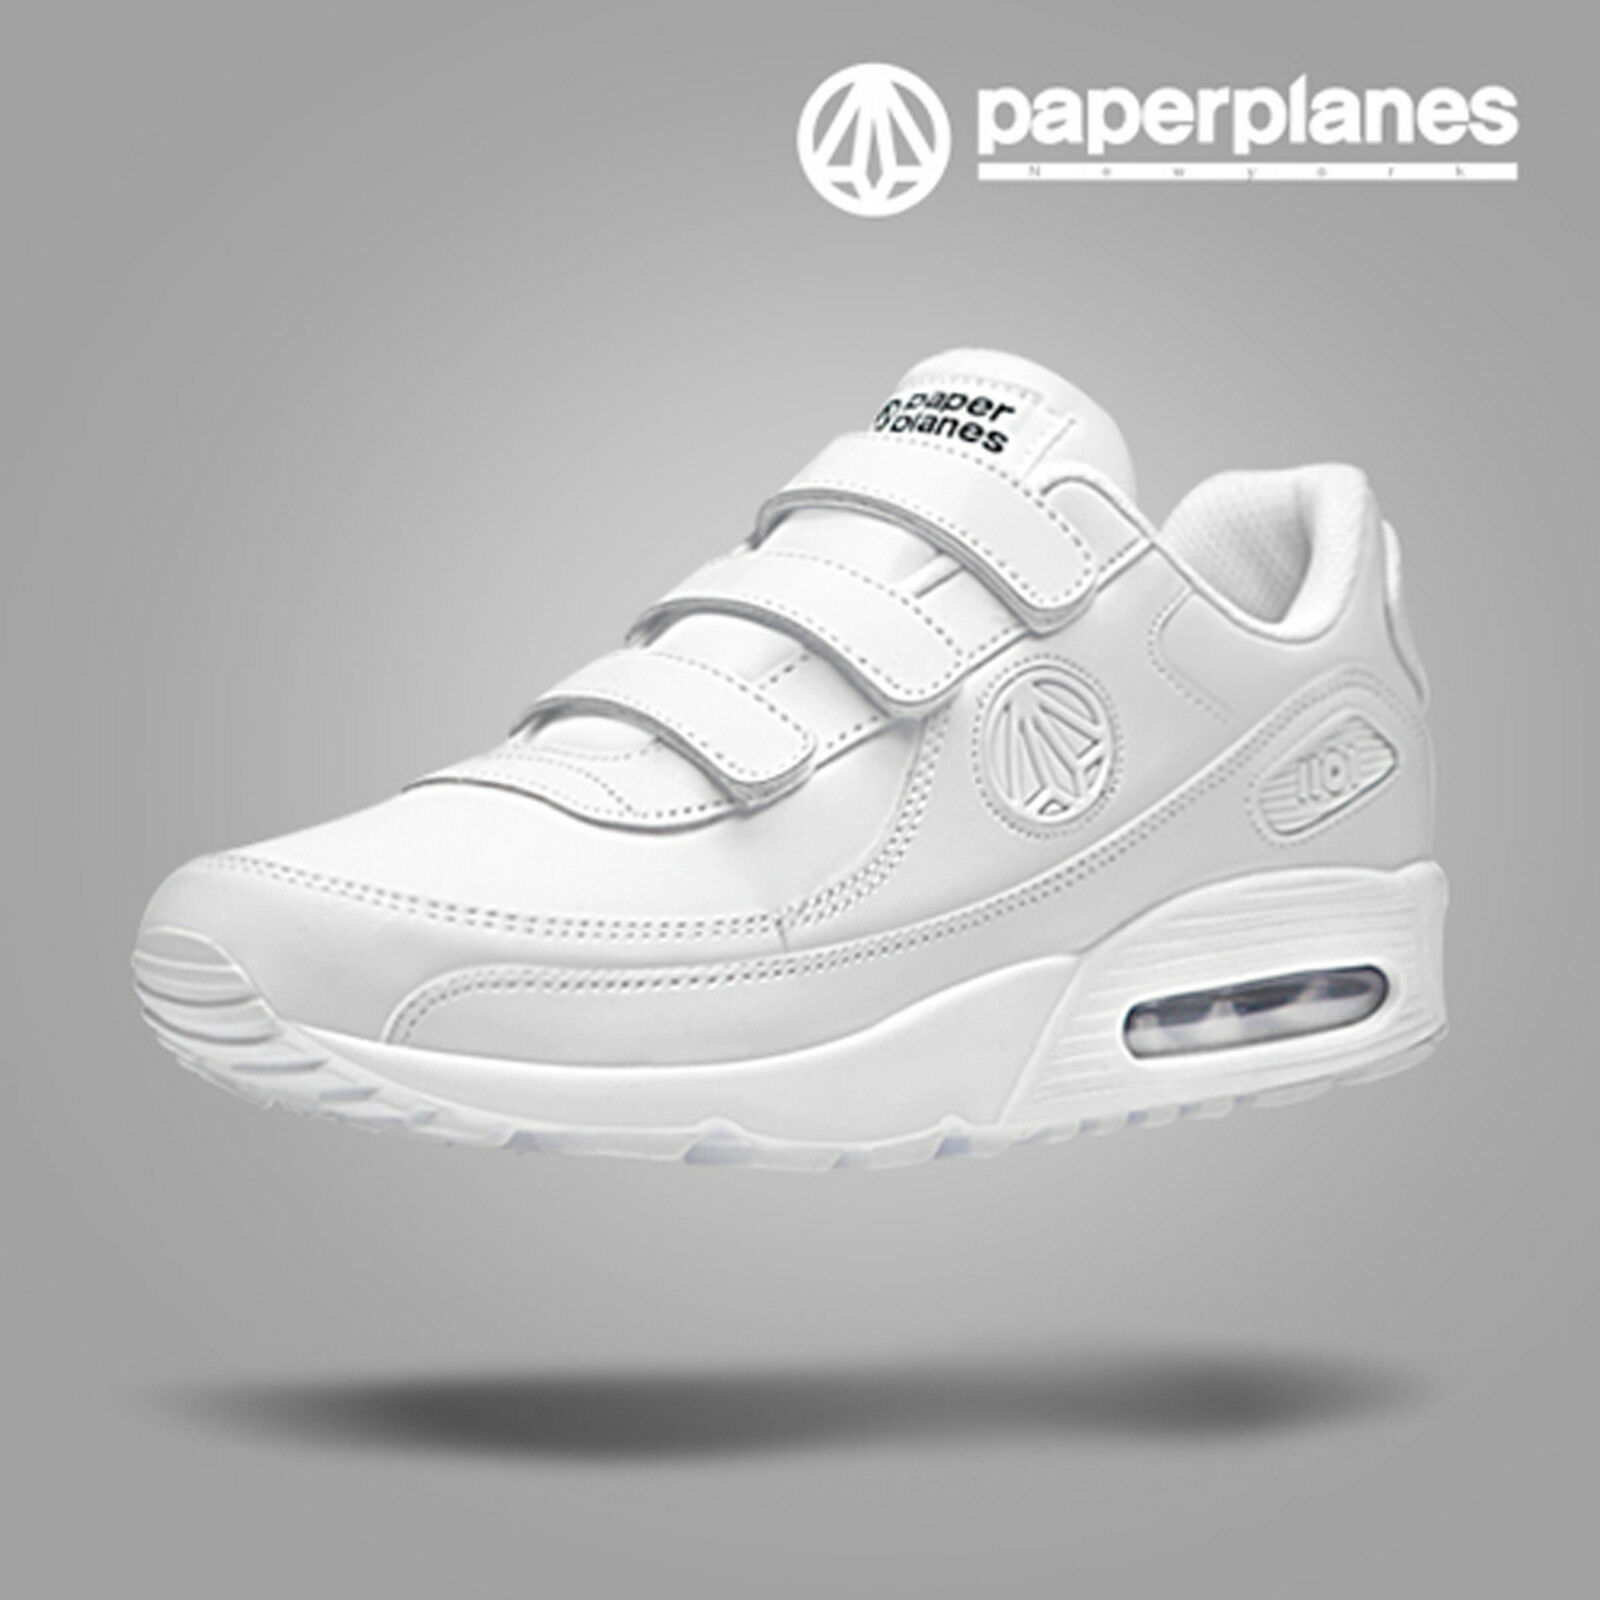 2018_Paperplanes Mens Sports Running Trainig Comfort Athletic Shoes_WHITE